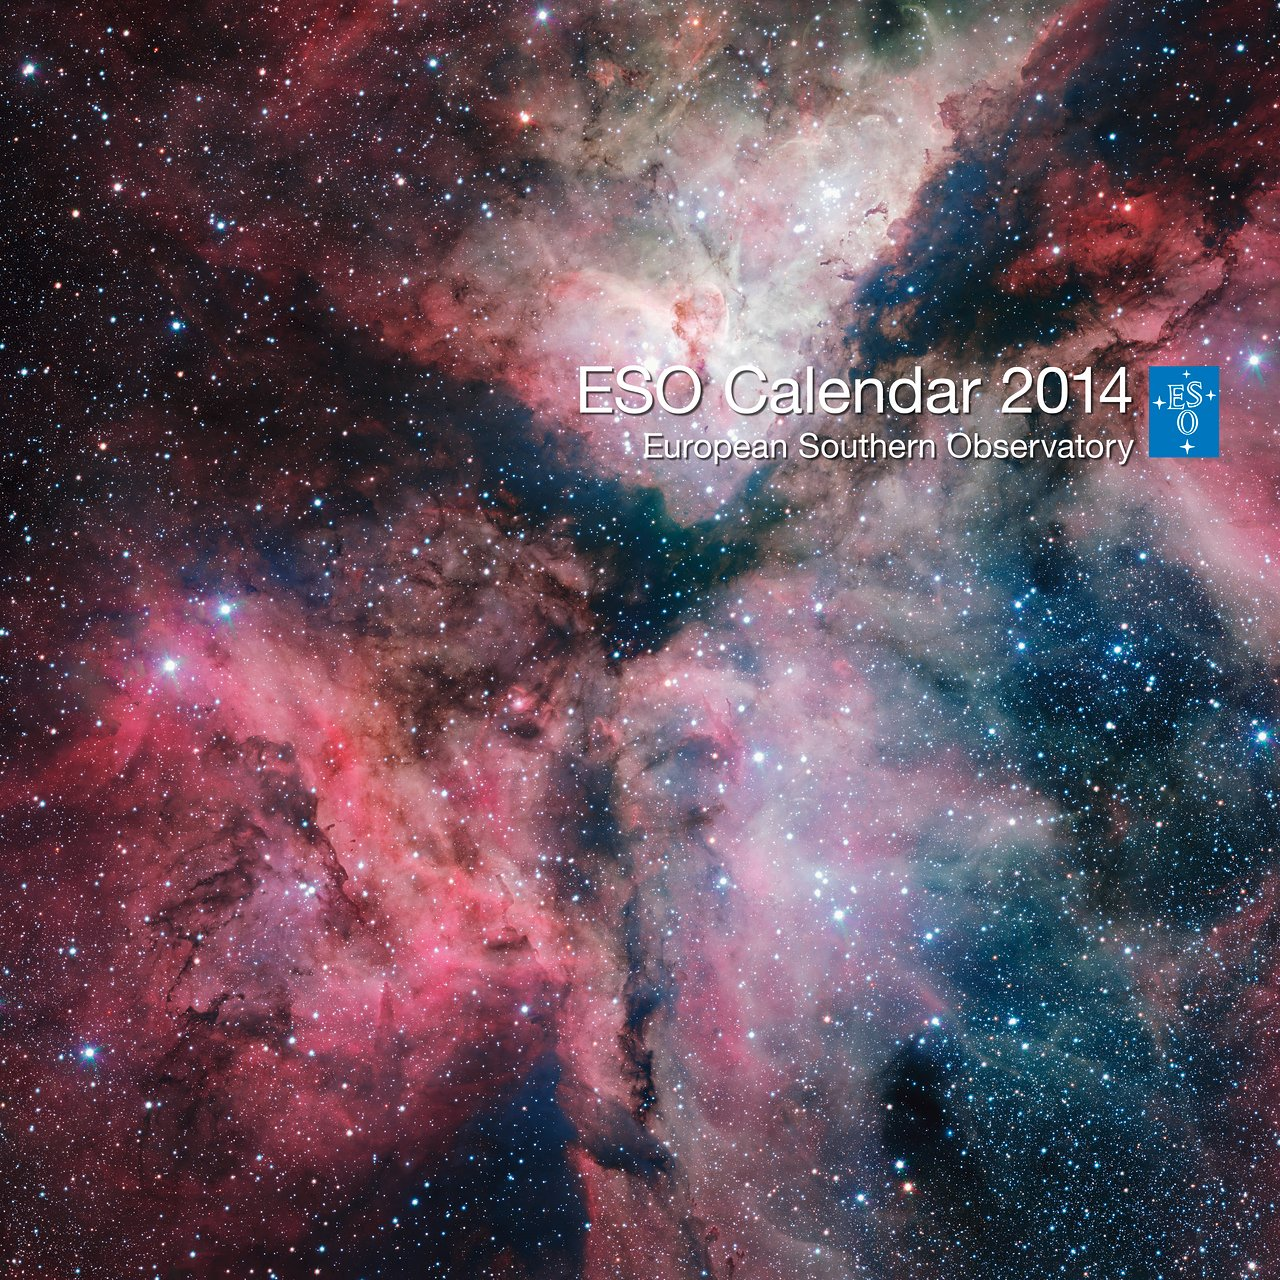 The cover of the 2014 ESO Calendar